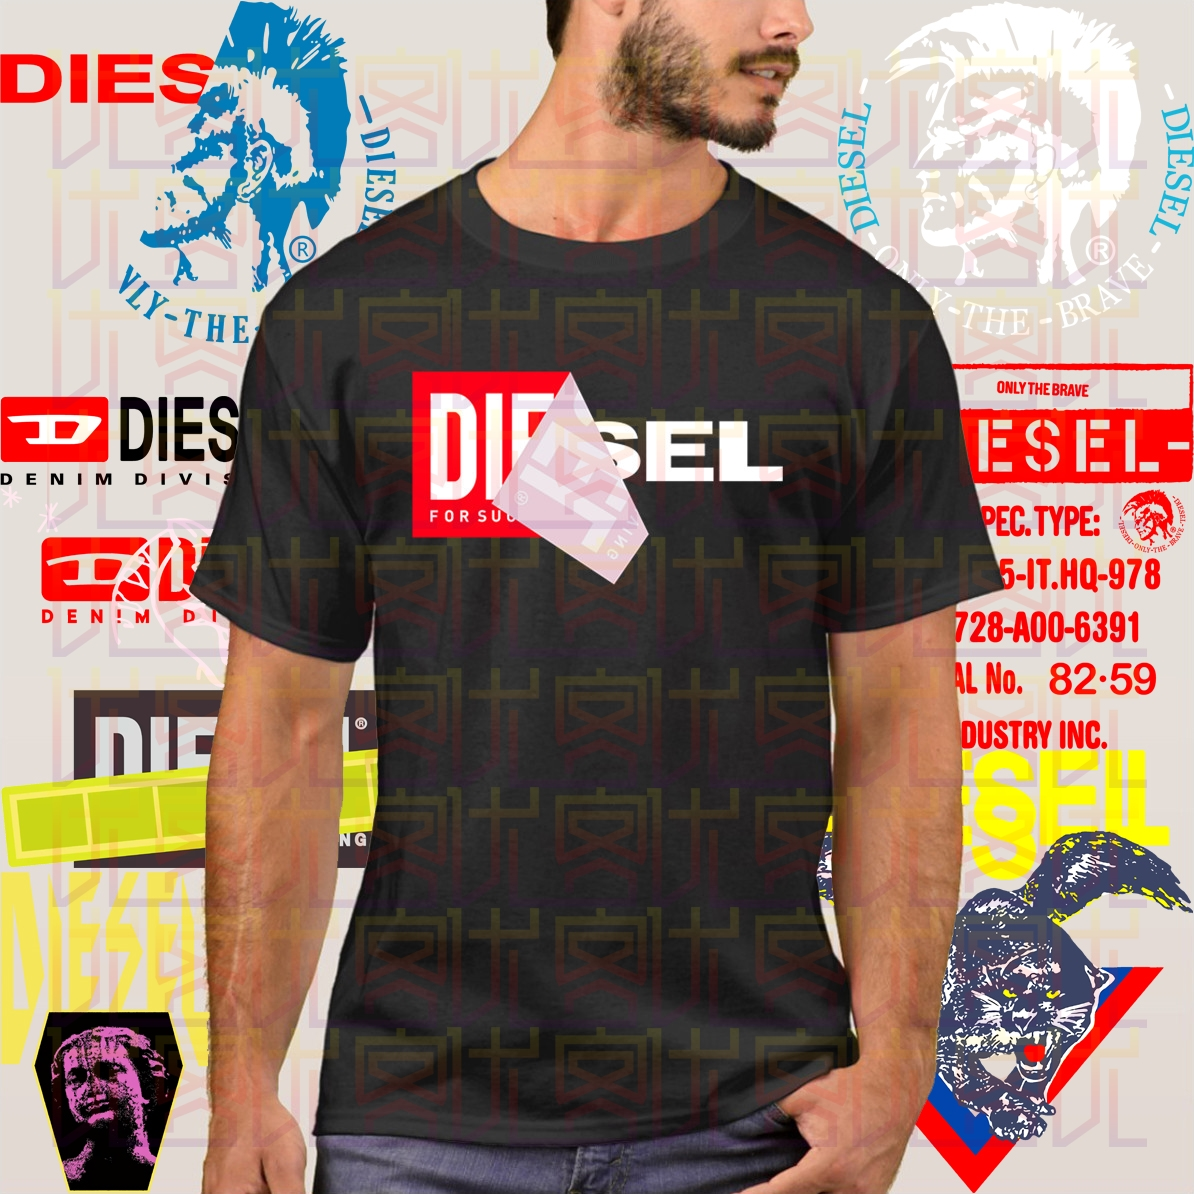 Diesel T-Diego QA T-Shirt Classic Style T-shirt Winner Tee Men Brand Clothing Clothes Popular T-Shirt Crewneck Cotton Cool Tees